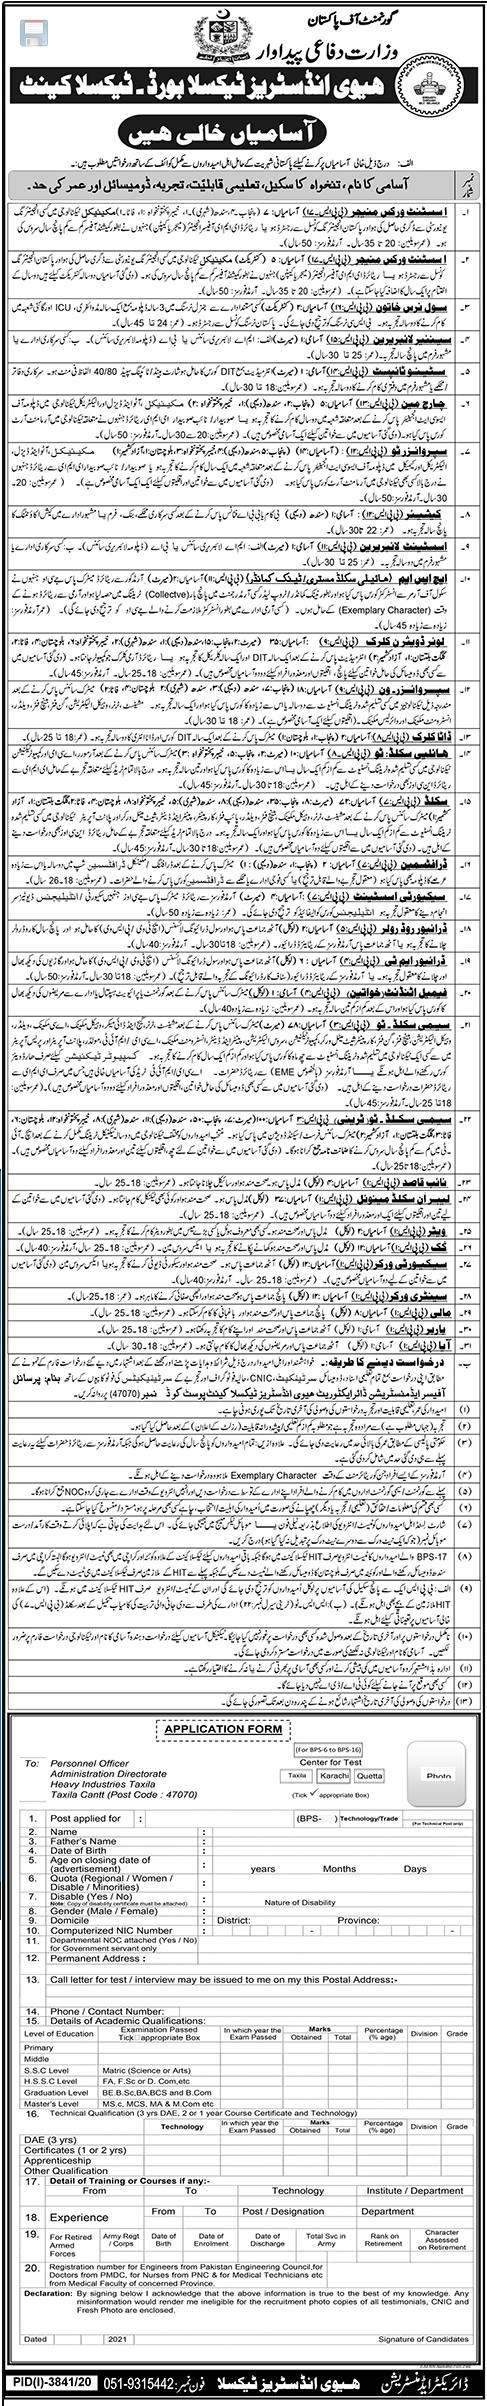 365 Posts in Ministry of Defence Production, Heavy Industries Taxilla Board Jobs 2021